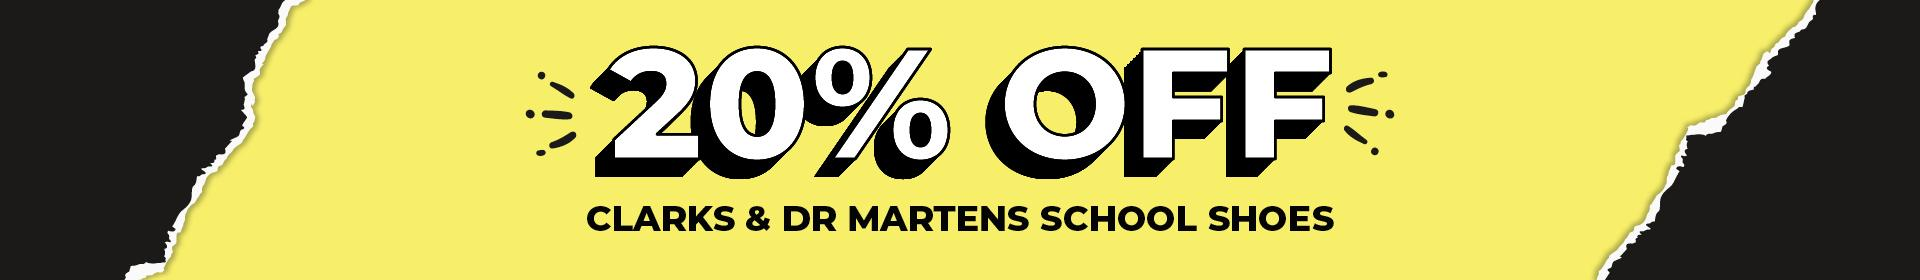 Take 20% Off All Clarks and Dr Marten School Shoes | Limited Time Only